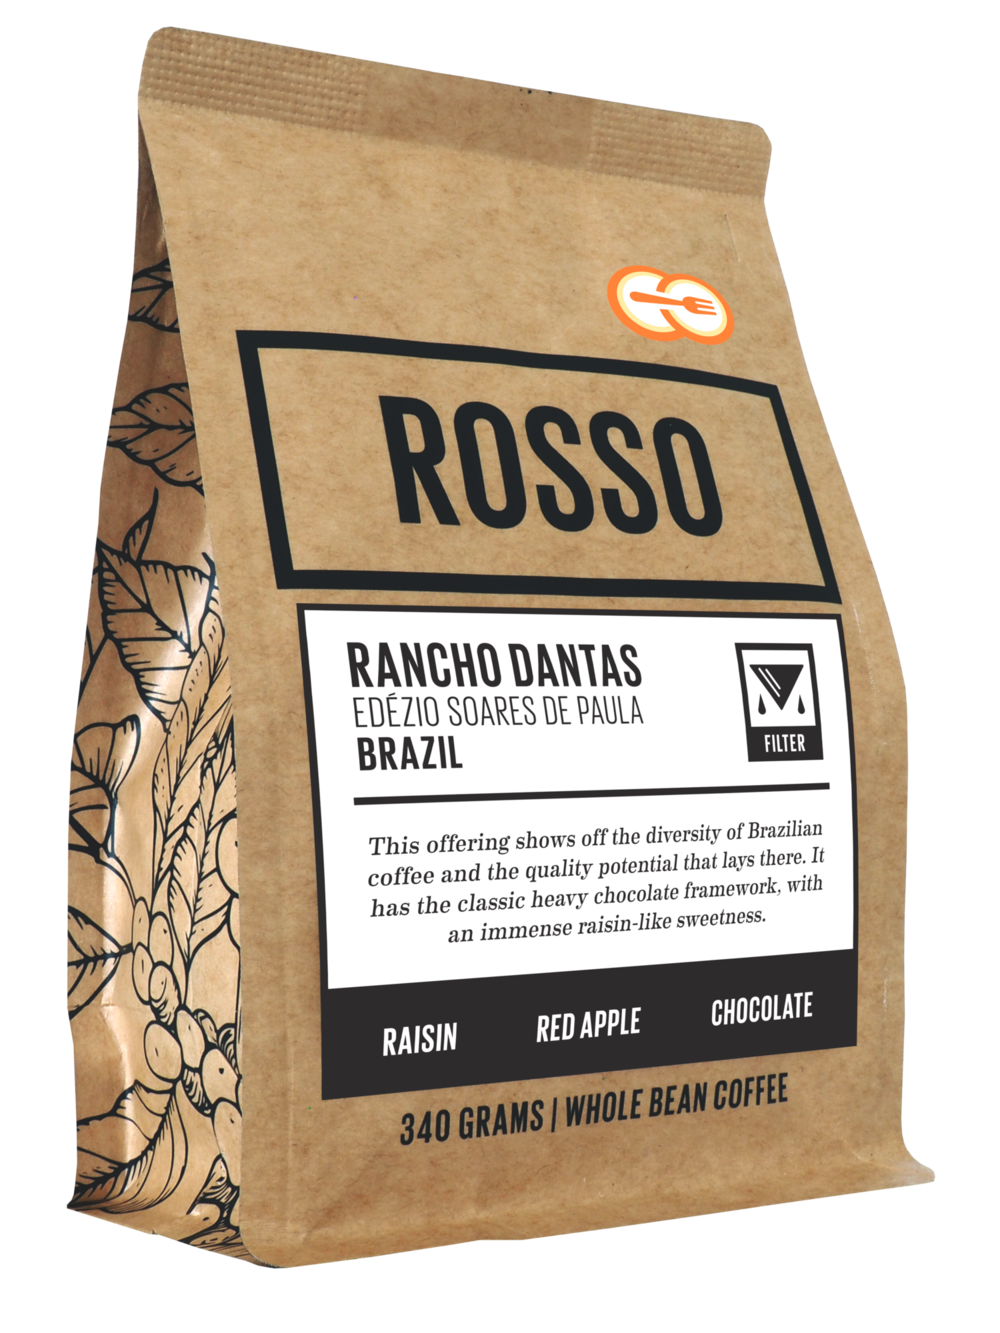 Rancho Dantas - Rancho Dantas has a classic heavy chocolate framework, with an immense raisin-like sweetness and some amazing red apple complexities. Plus it's fun as heck to say